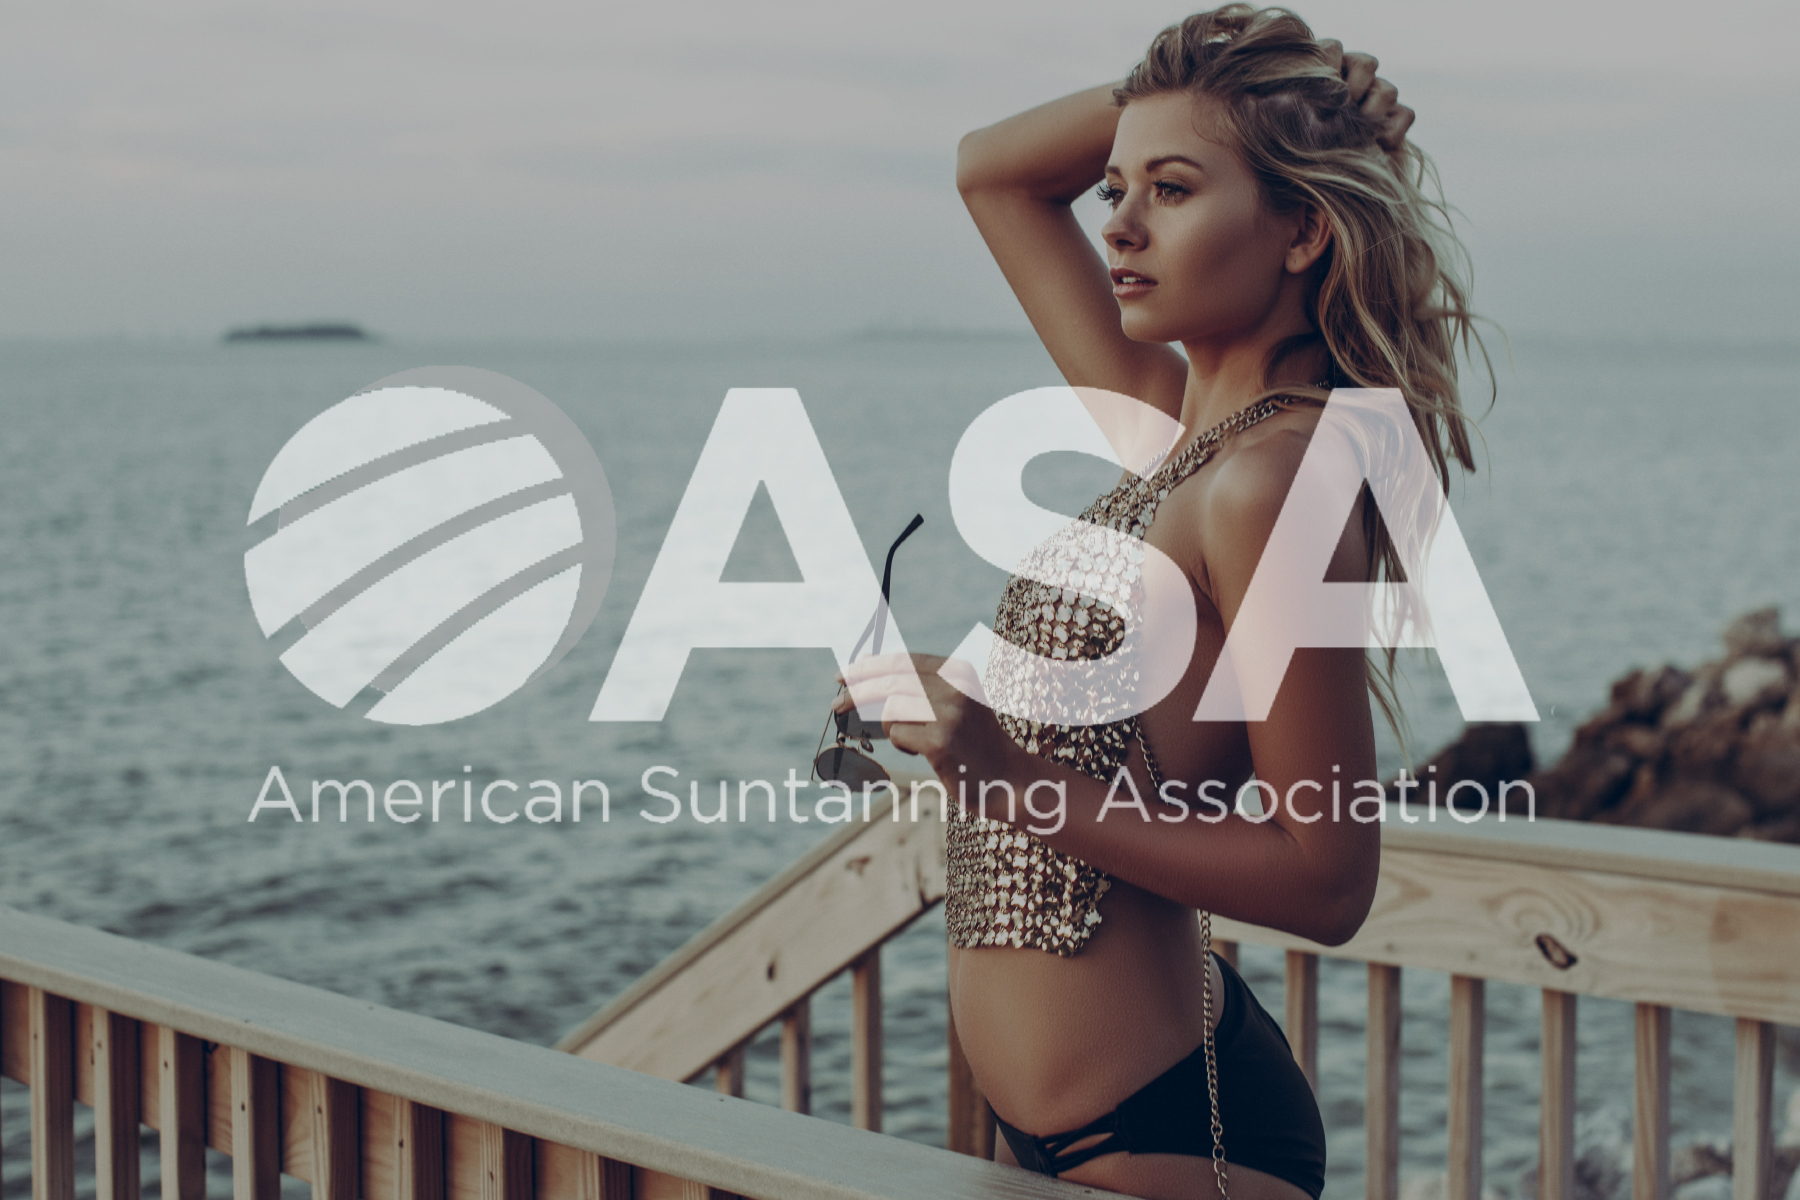 American Suntanning Association - The American Suntanning Association is a values-based coalition of professional sunbed salons committed to teaching the vision of responsible and balanced sun care and engaging in higher-level discussion about UV exposure and indoor tanning. The ASA's primary objective will be to play a lead role in the development of scientifically supported information regarding UV light from the sun, sunbeds and spray tanning by working with scientific groups, government agencies and the media.